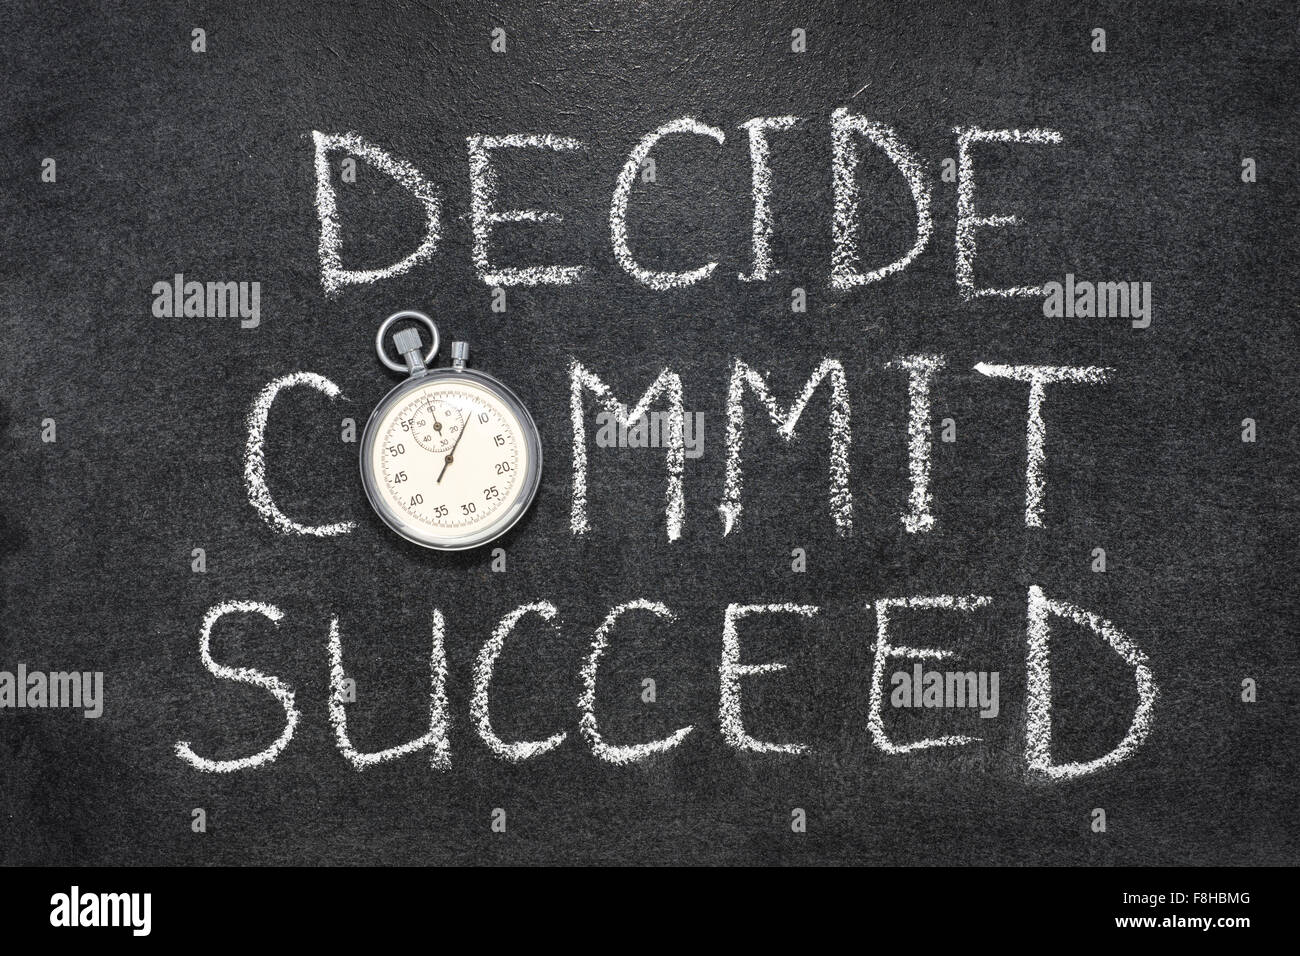 decide, commit, succeed words handwritten on chalkboard with vintage precise stopwatch used instead of O - Stock Image